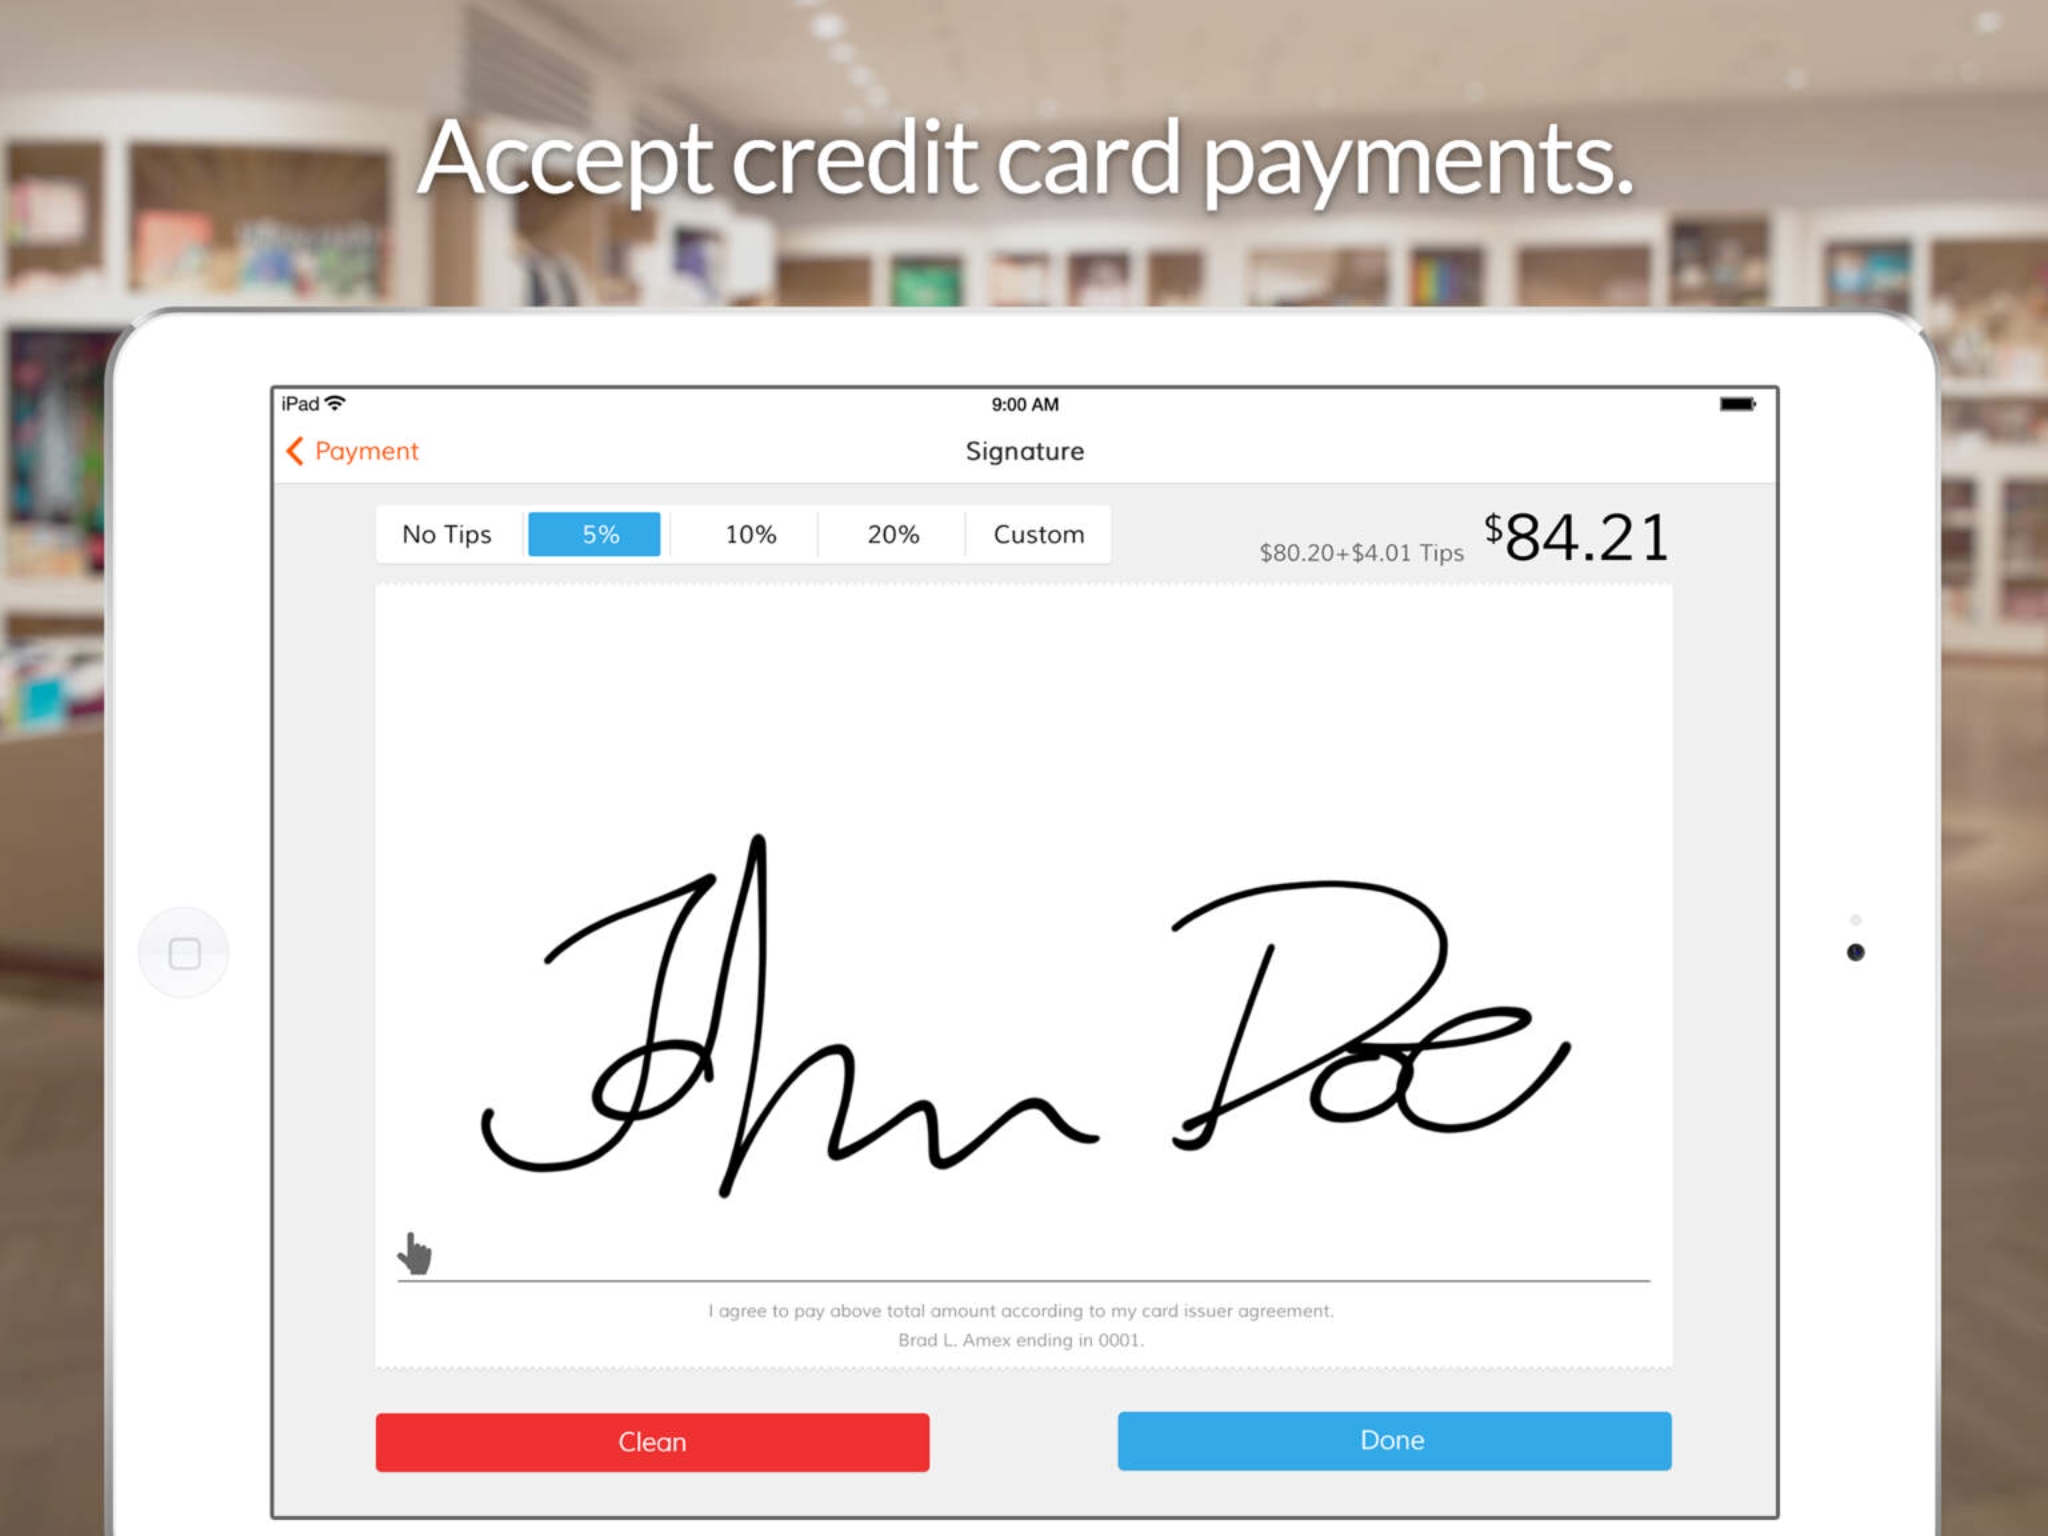 Accept credit card payments, tips and electronic signatures online via iPad